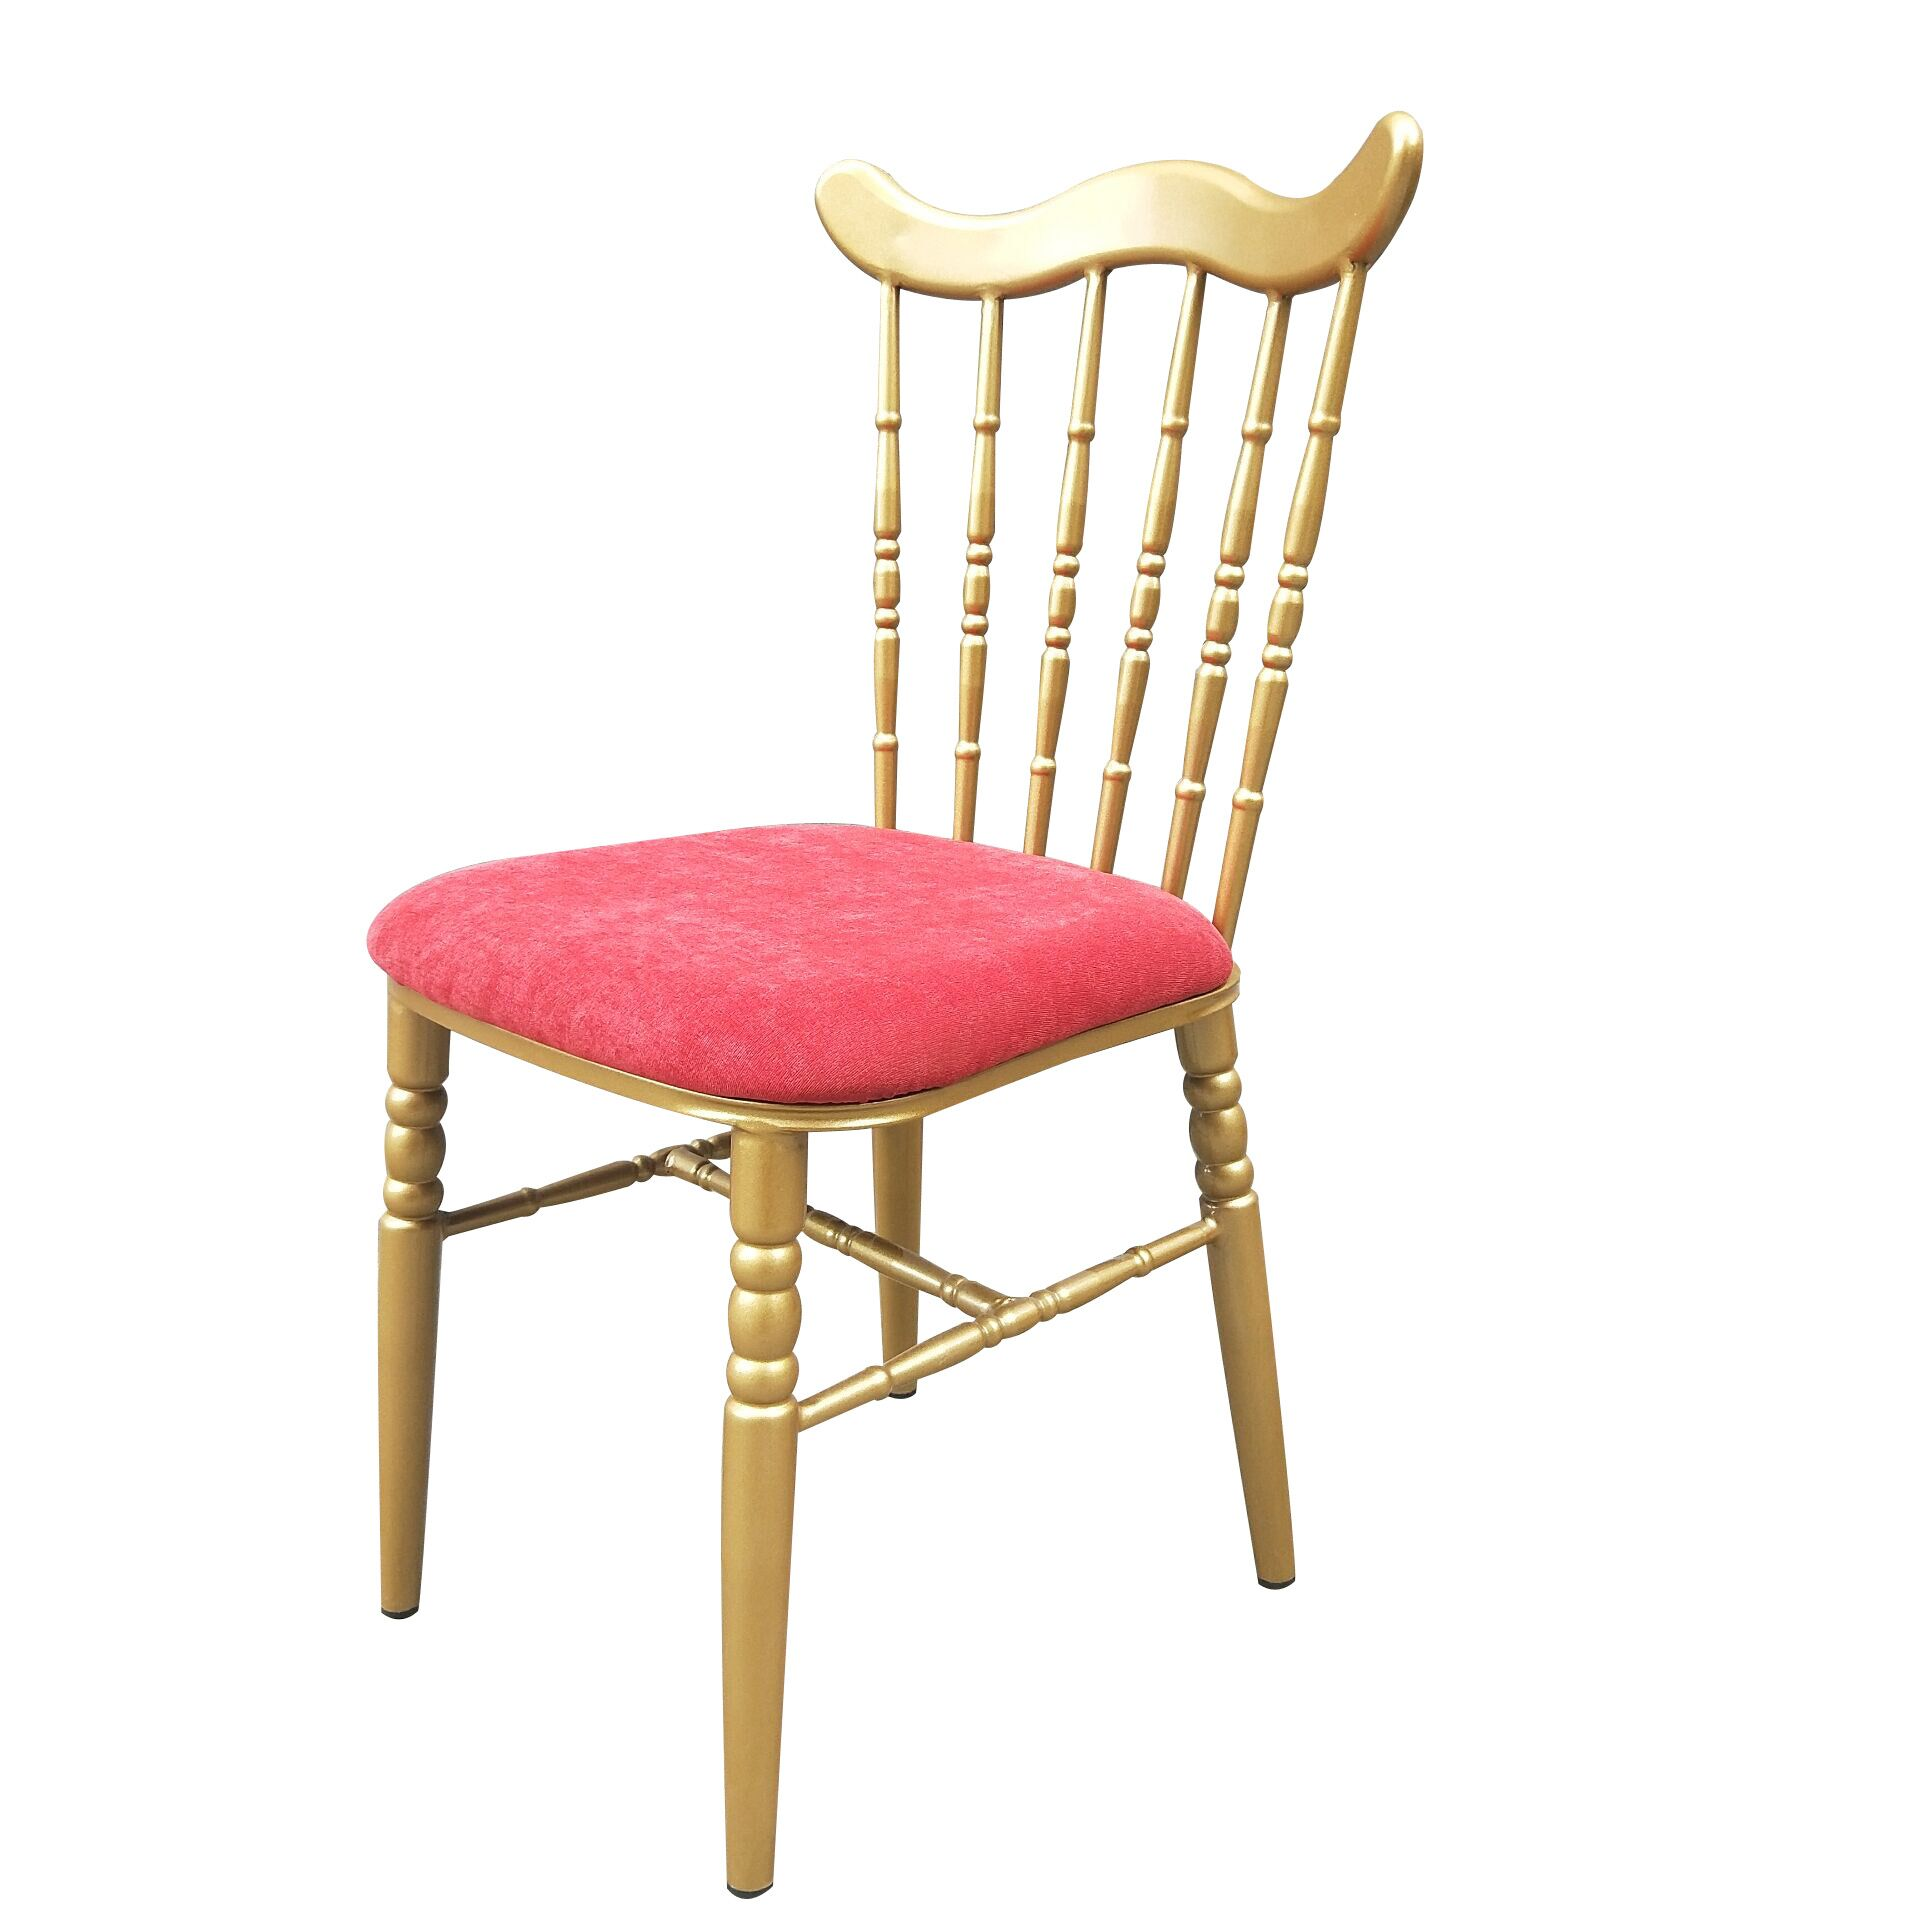 Original Factory Quality Church Furniture -